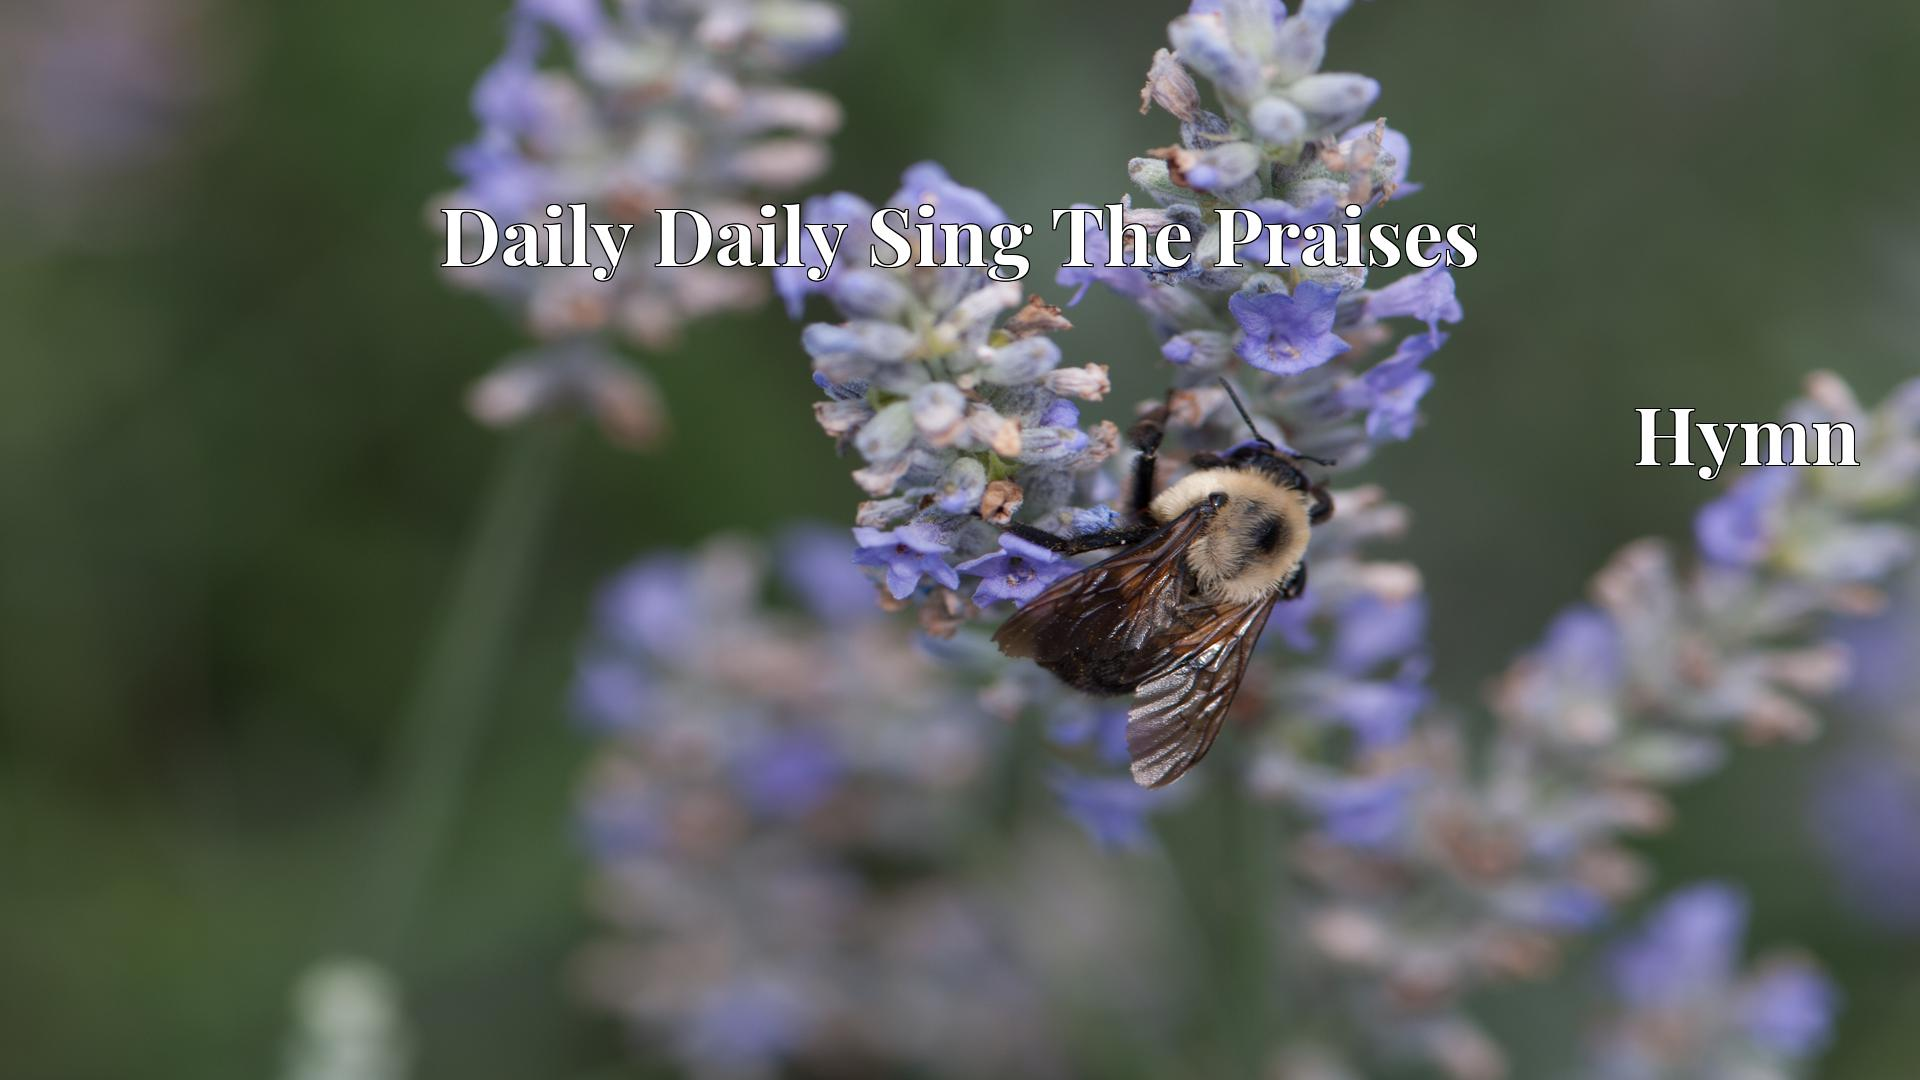 Daily Daily Sing The Praises - Hymn